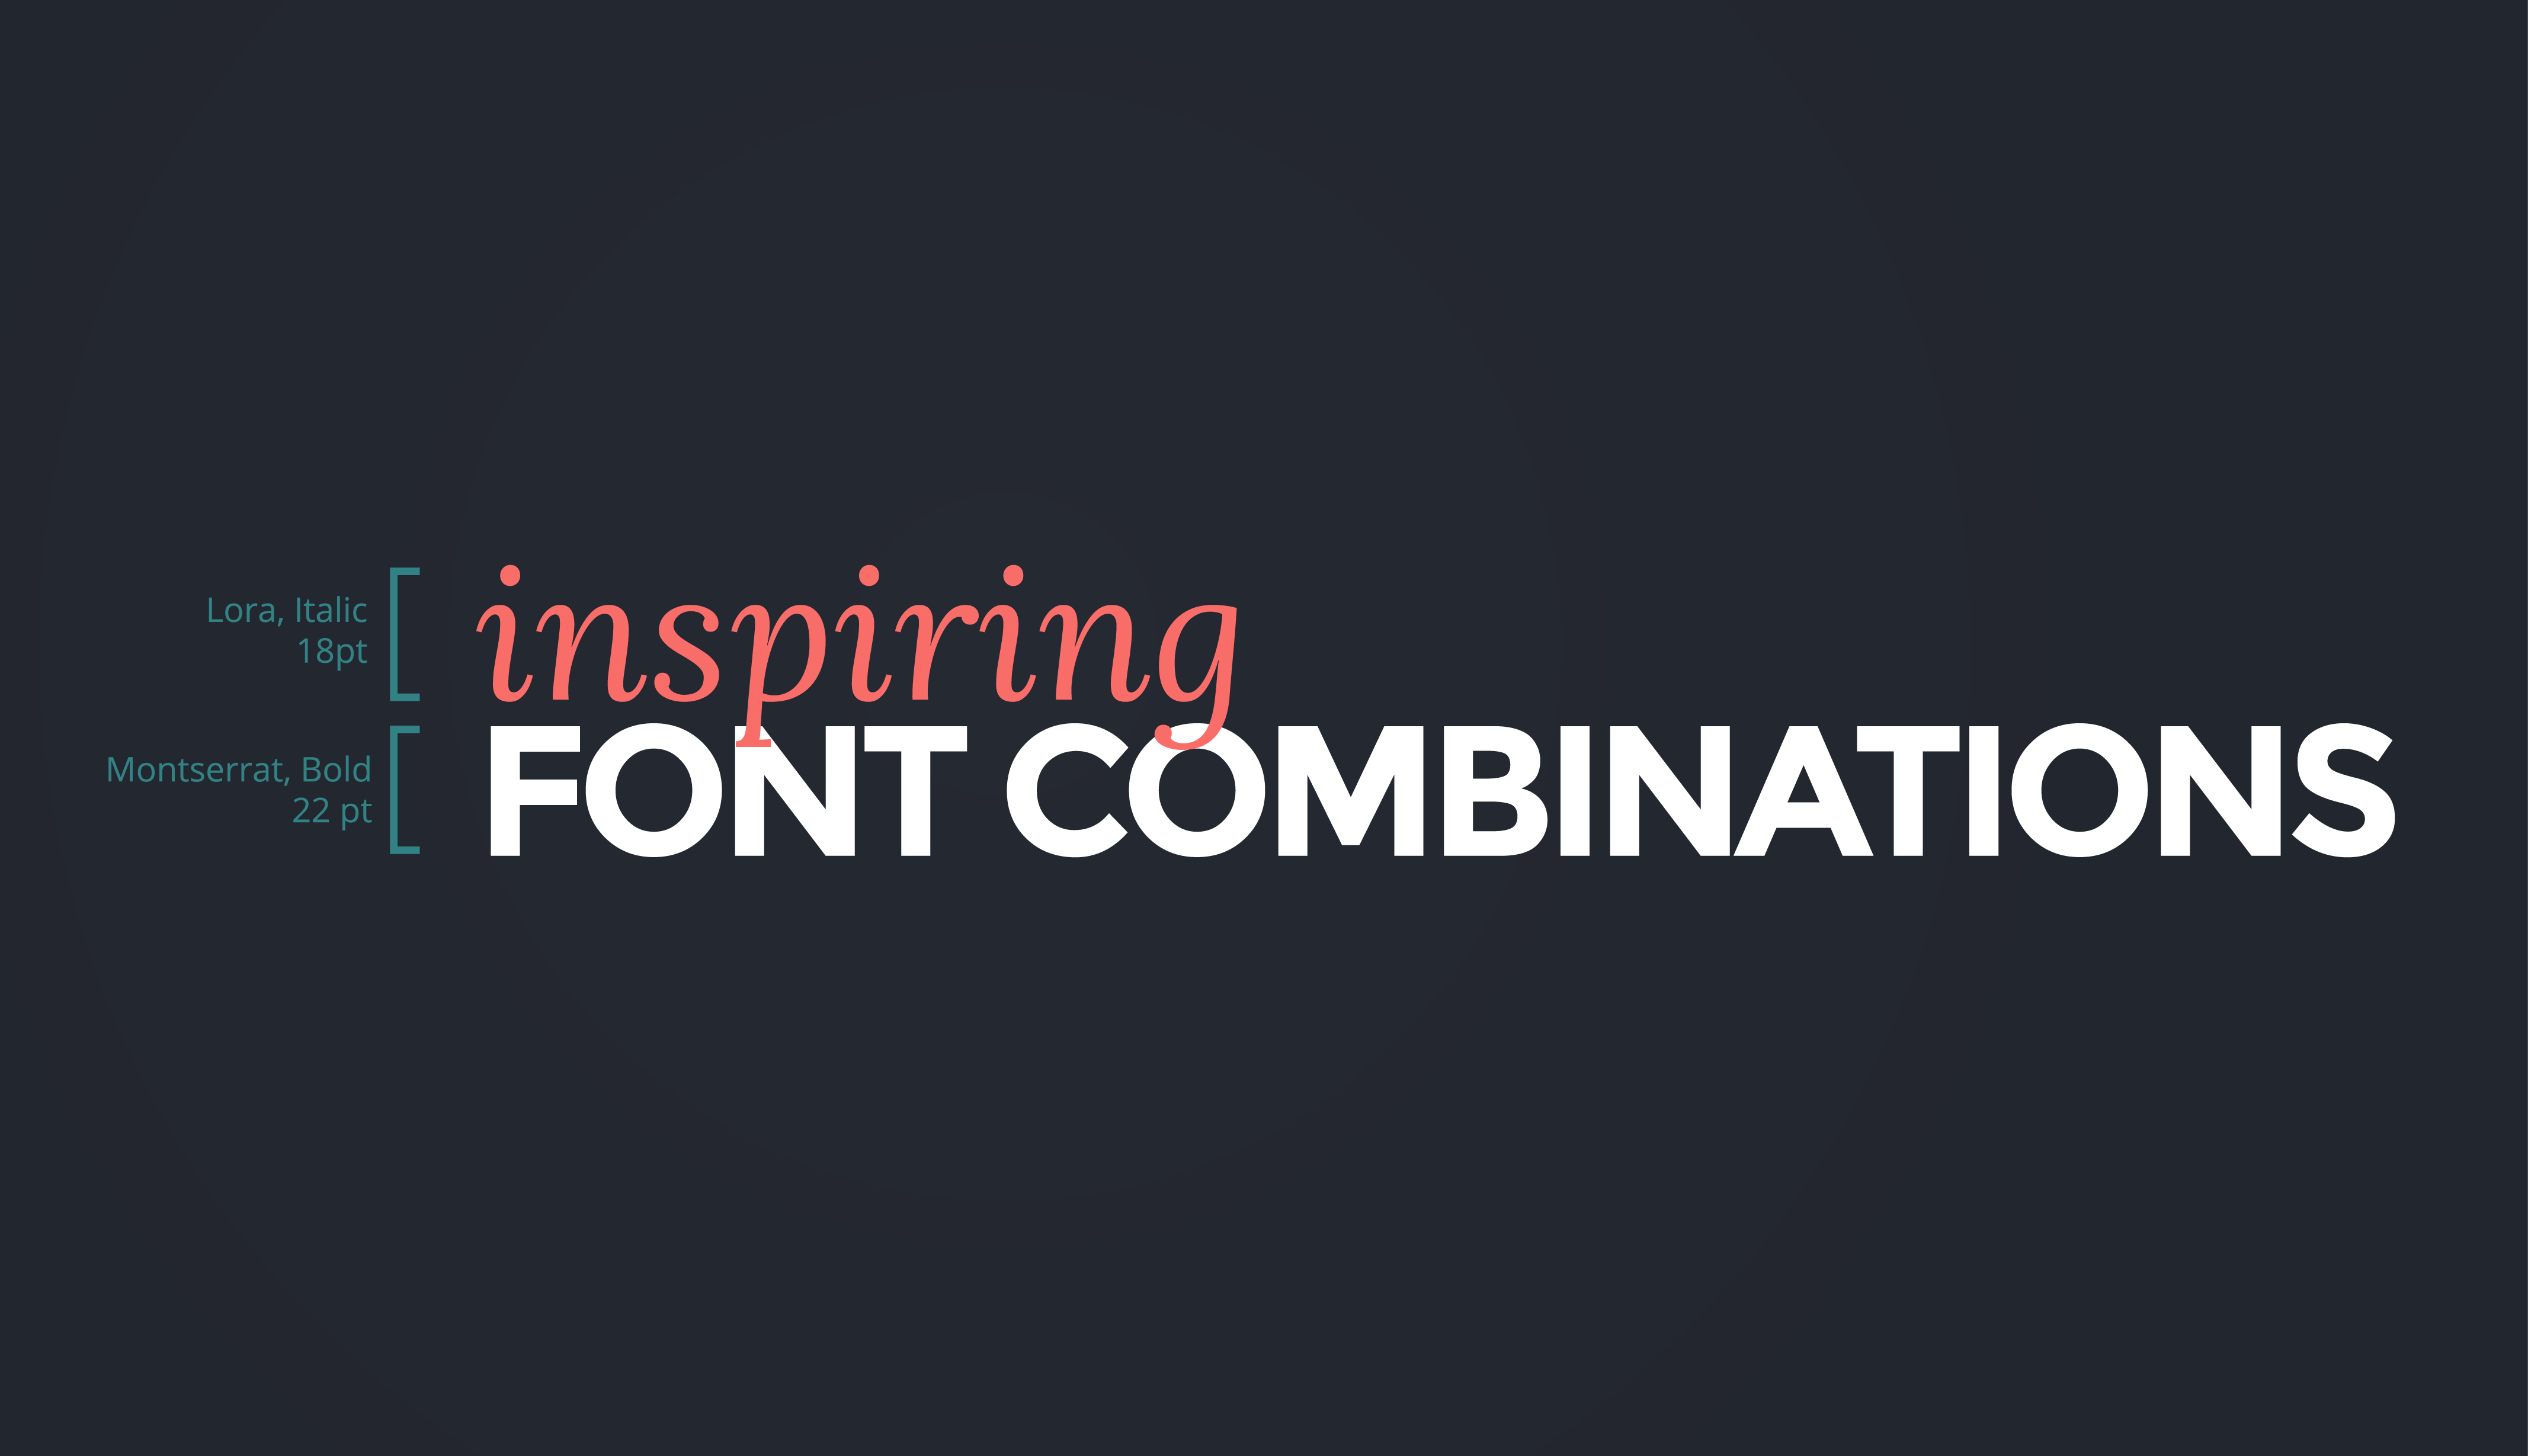 15 Perfect Font Combinations For Your Next Design 2021